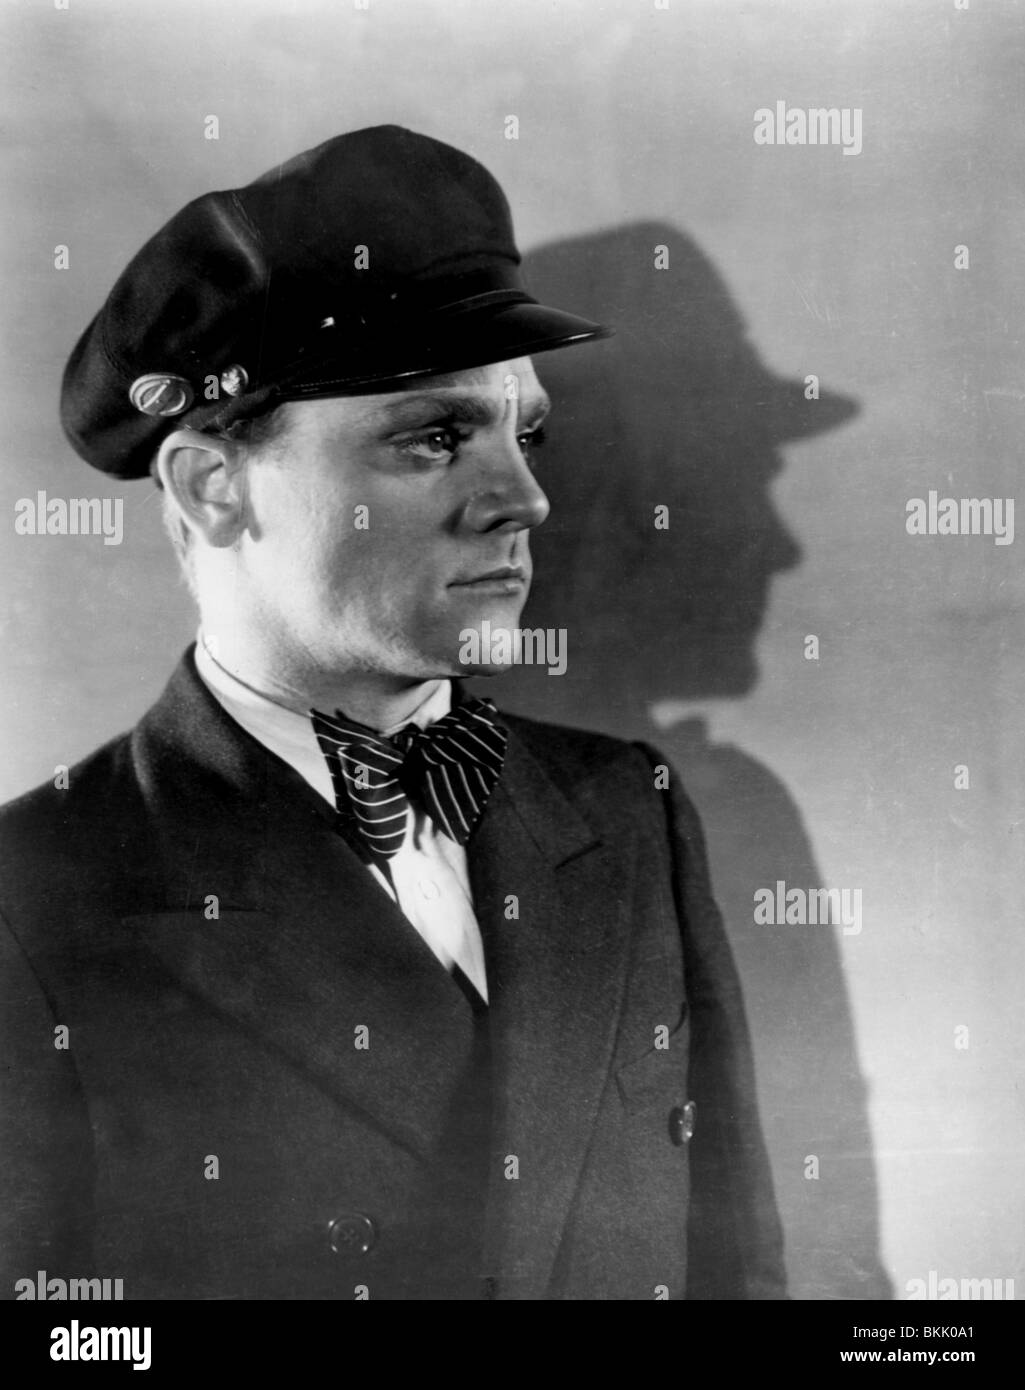 TAXI -1931 JAMES CAGNEY - Stock Image